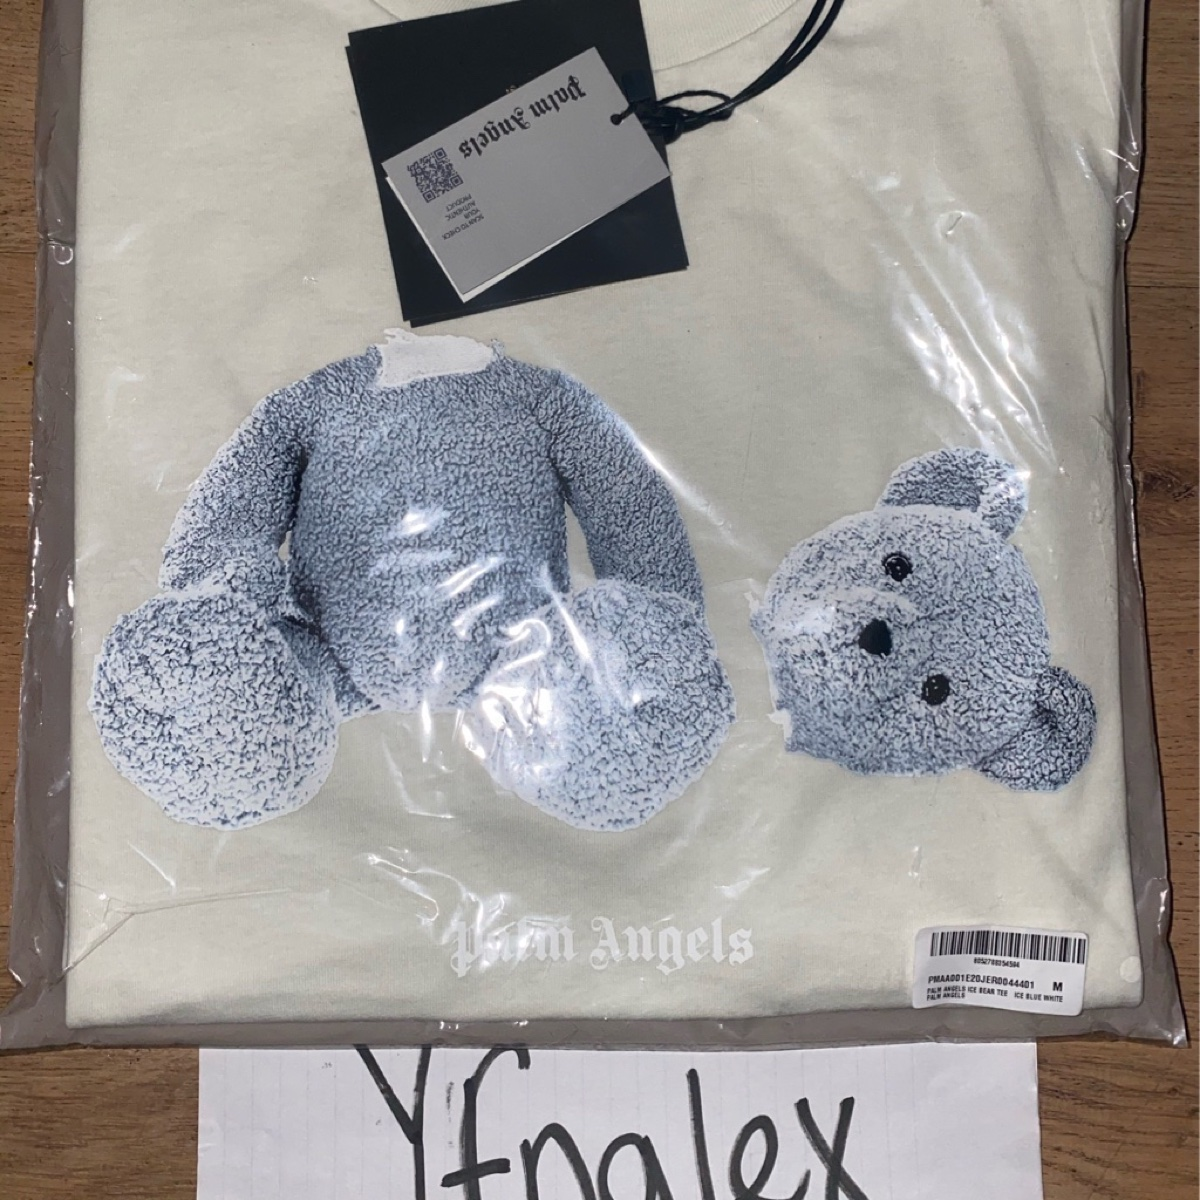 PALM ANGELS ICE BEAR CREW NECK T-SHIRT